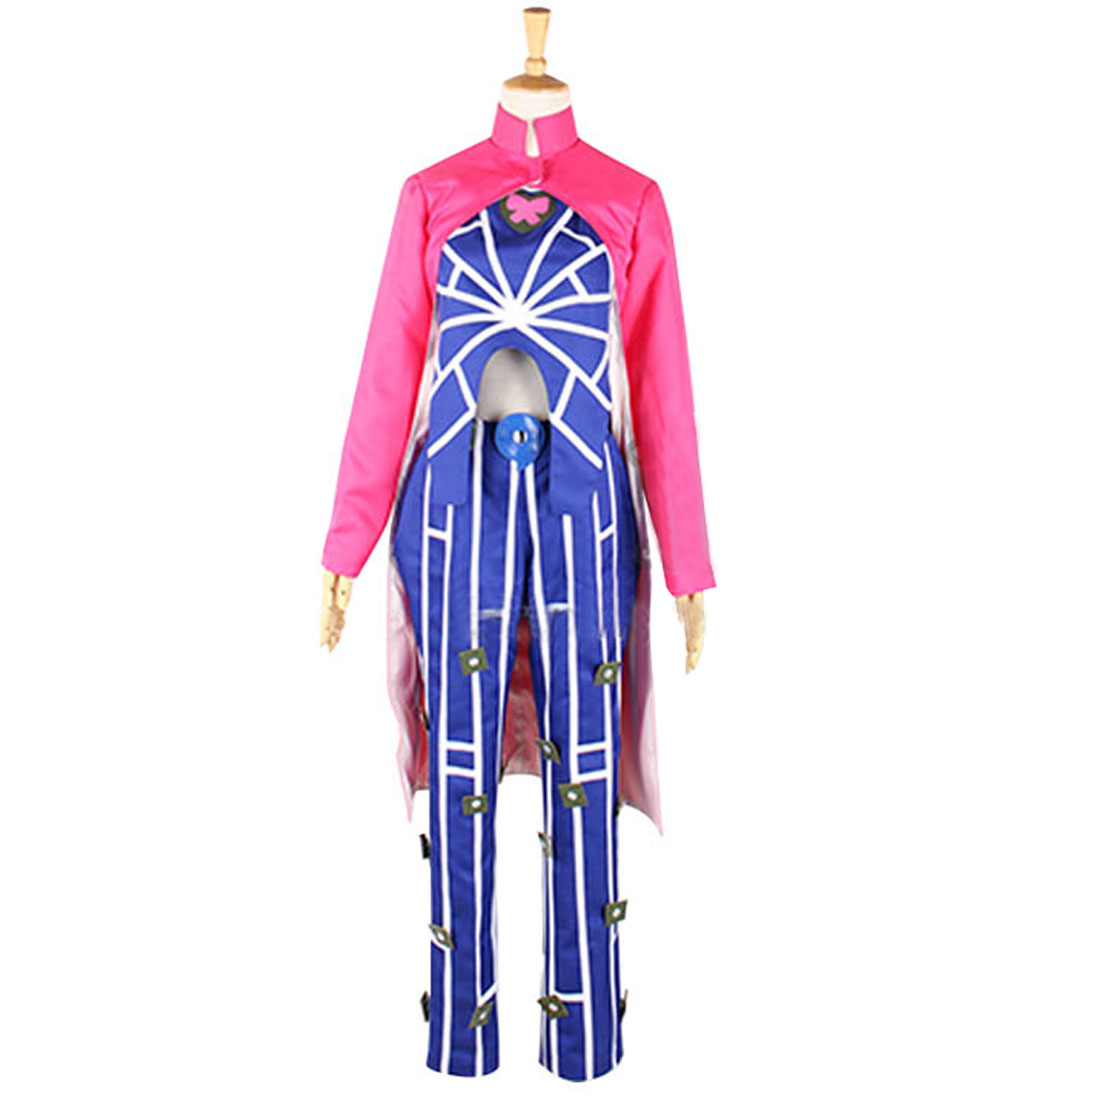 2019 JoJo's Bizarre Adventure Jolyne Kujo Cosplay Jolyne Cujoh Cosplay Costume Two Styles For Choosing